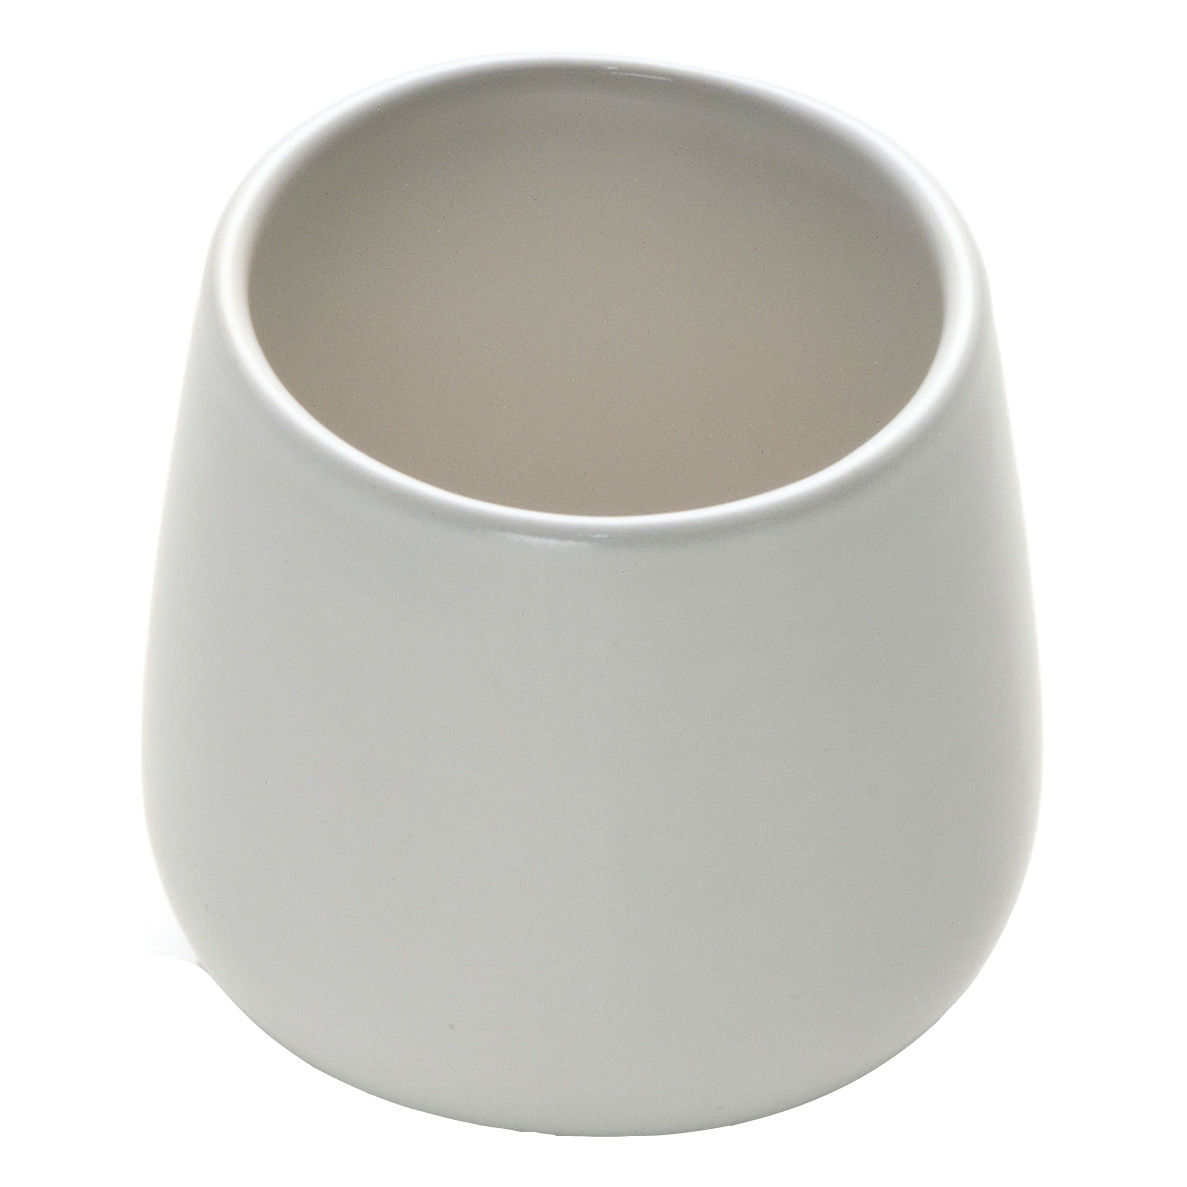 Tableware - Coffee Mugs & Tea Cups - Ovale Coffee cup by Alessi - White - Stoneware ceramic